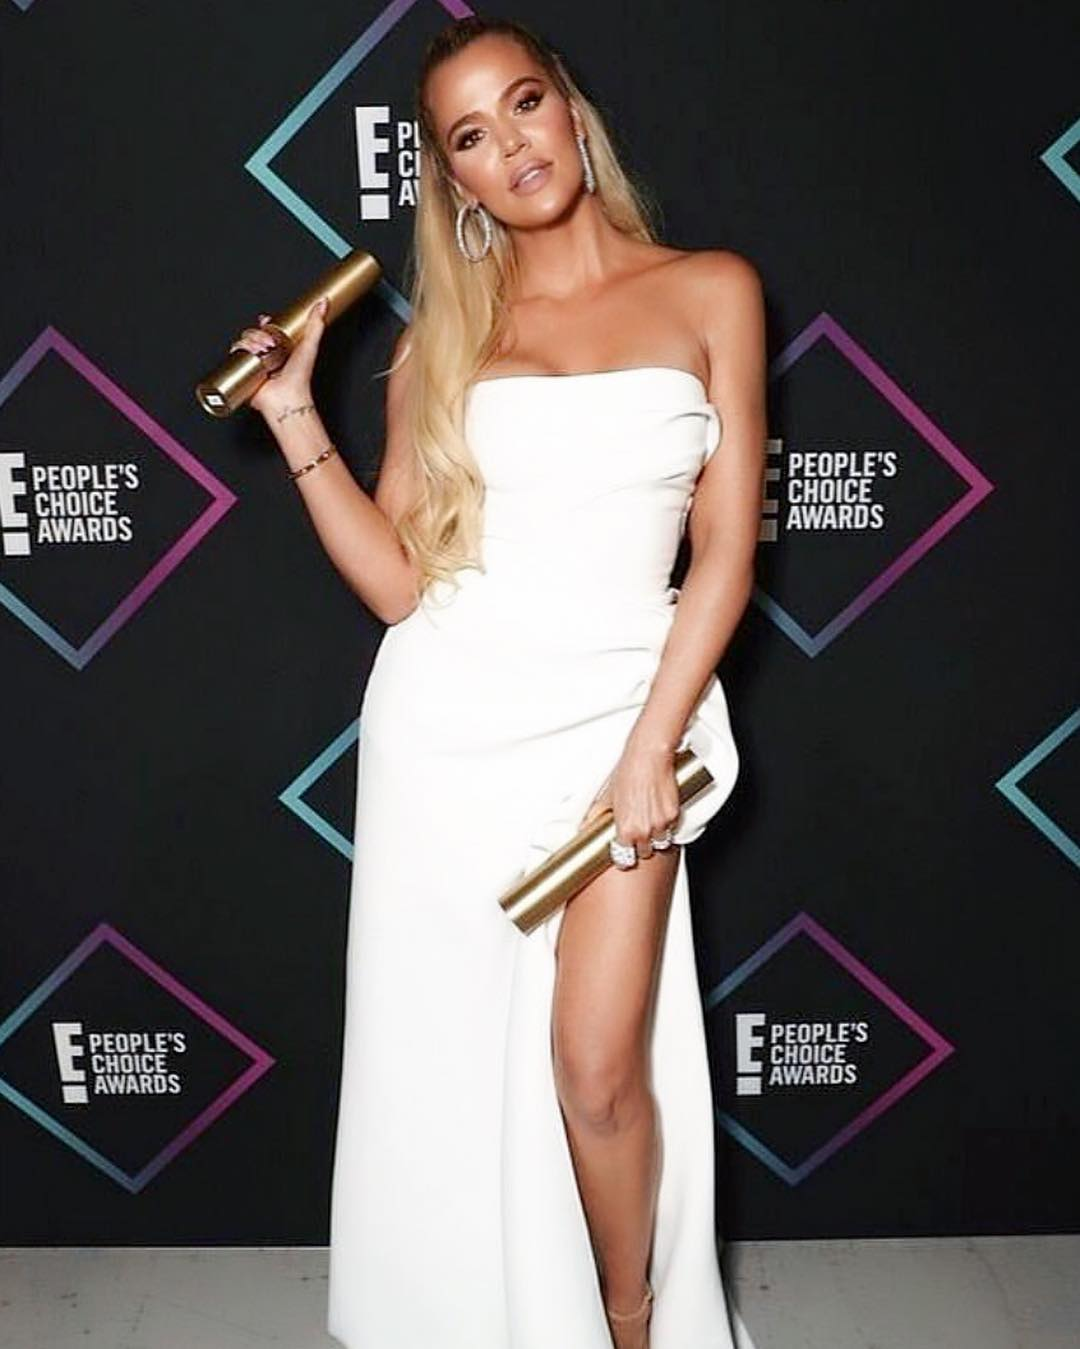 Khloé Kardashian Wearing Strapless Maxi Dress At Peoples Choice Awards 2019